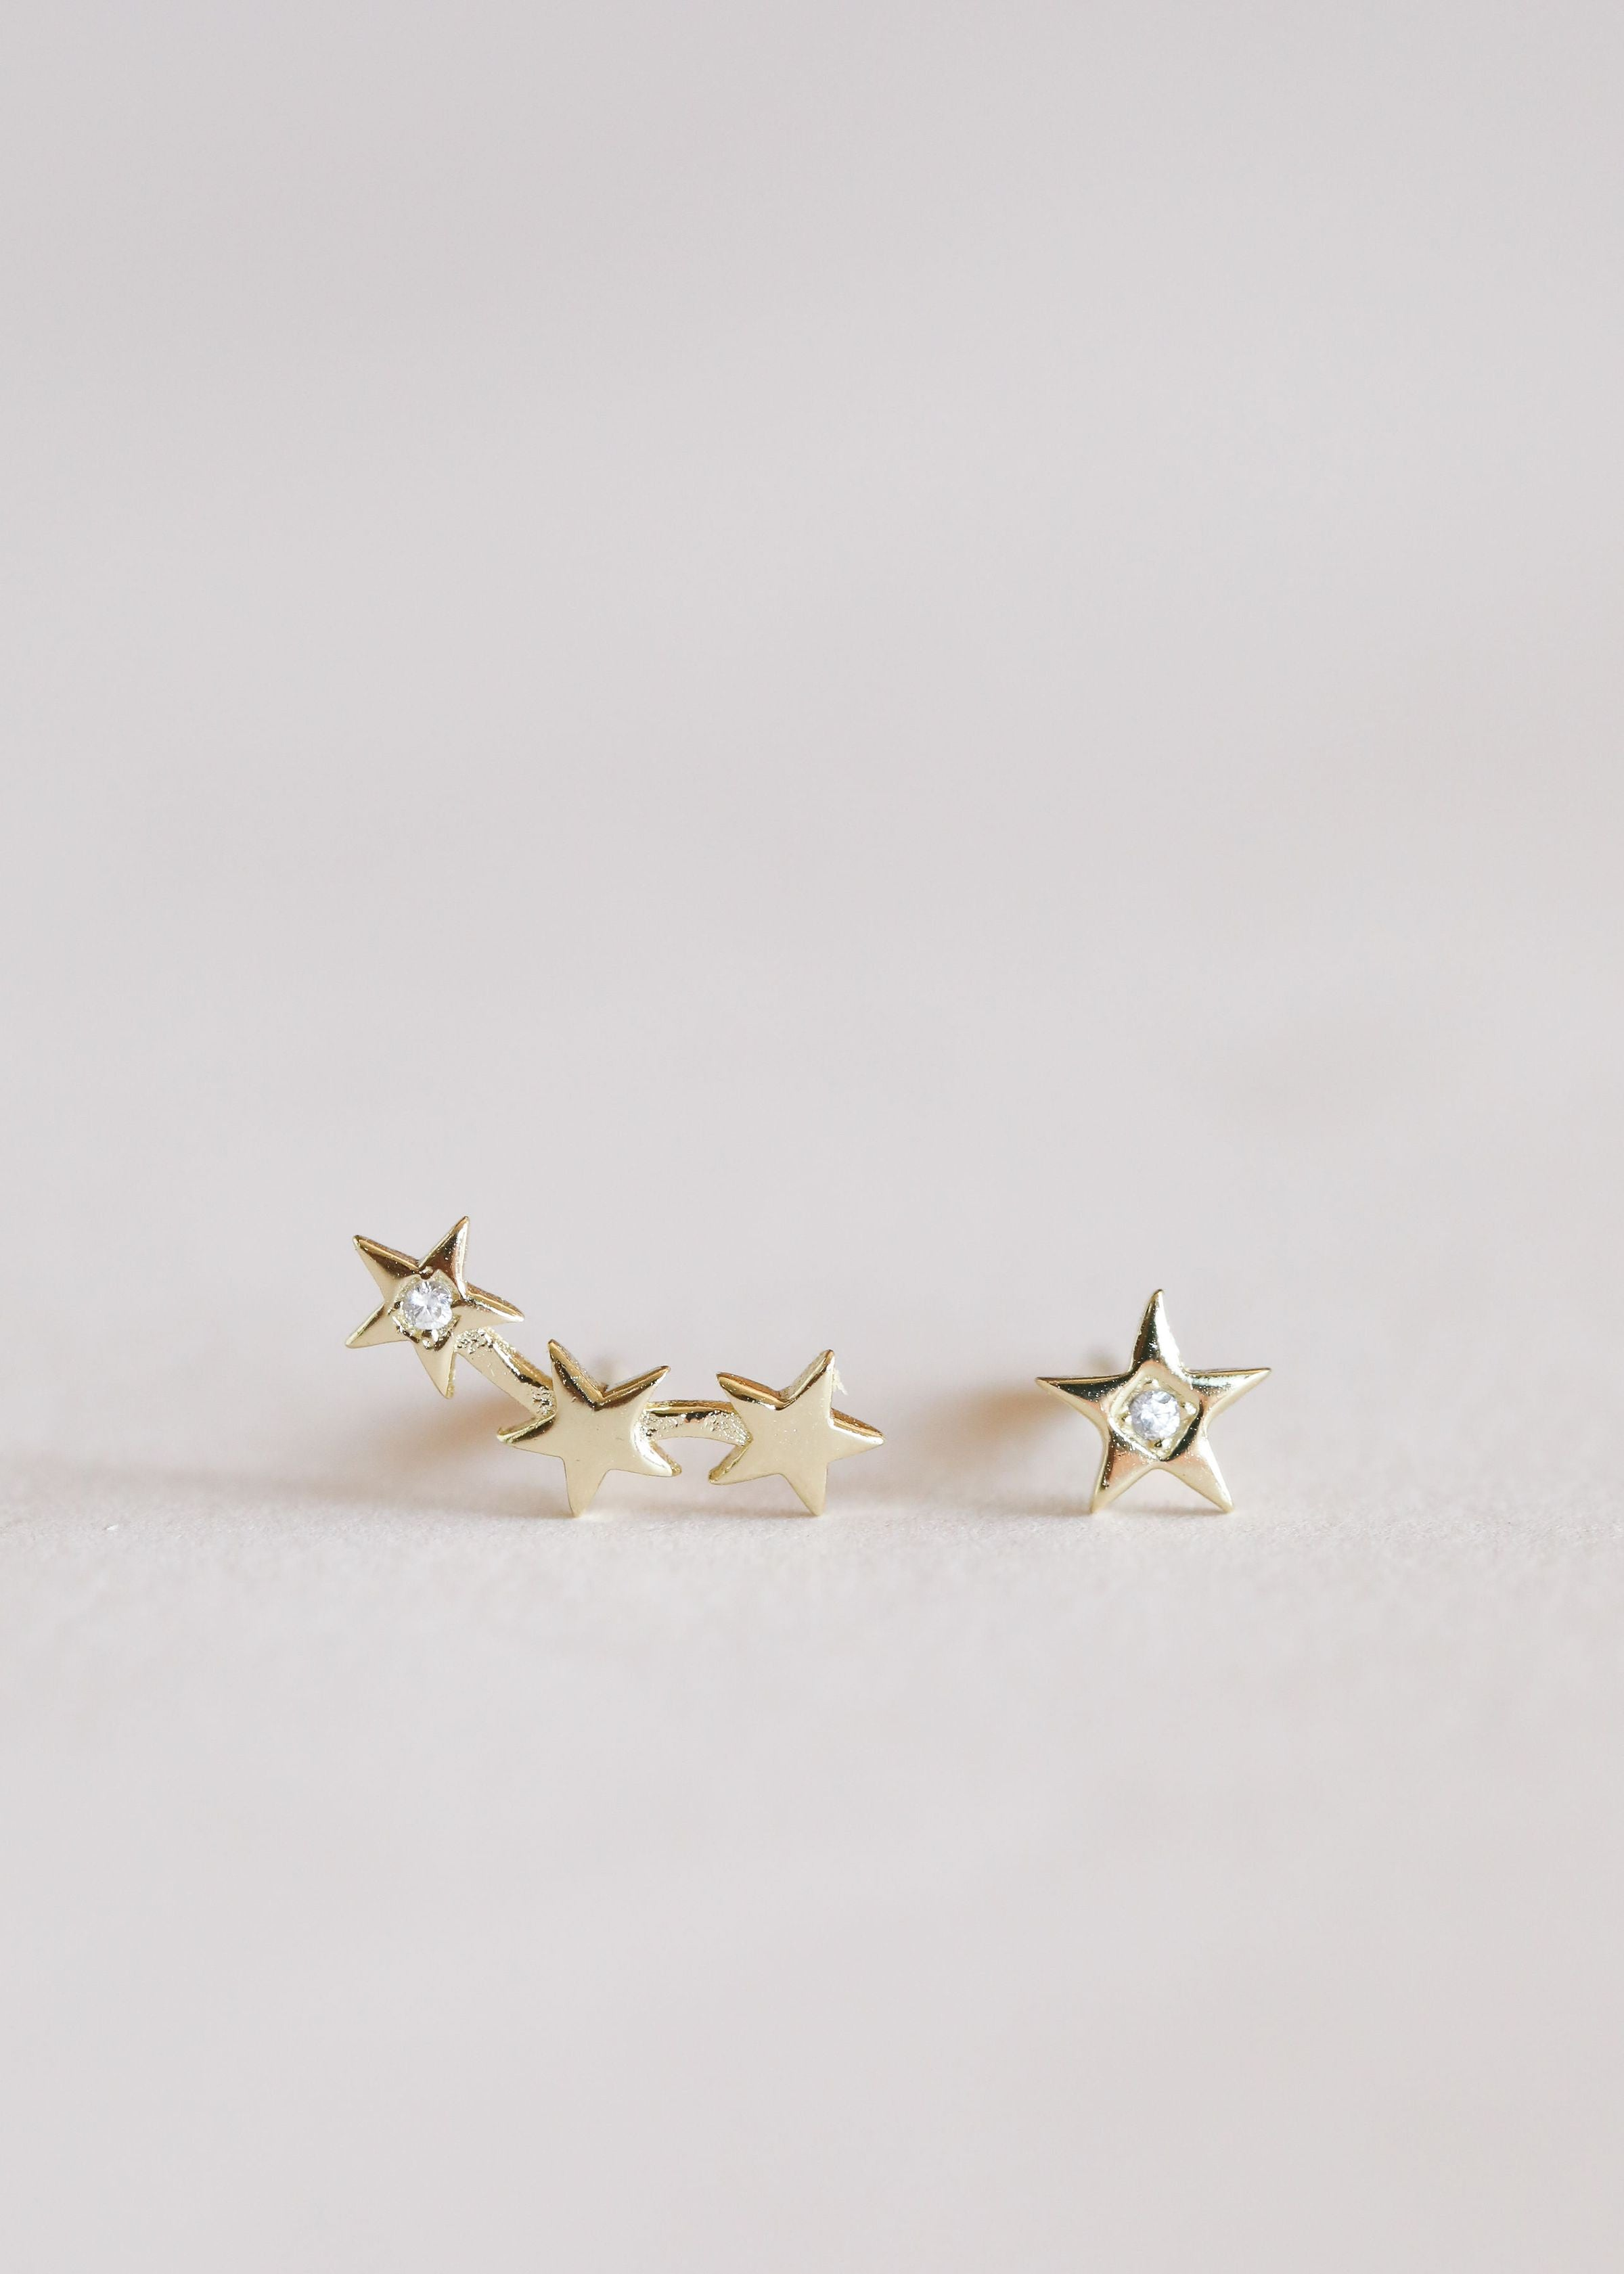 Star Constellations Complement Earrings by JaxKelly